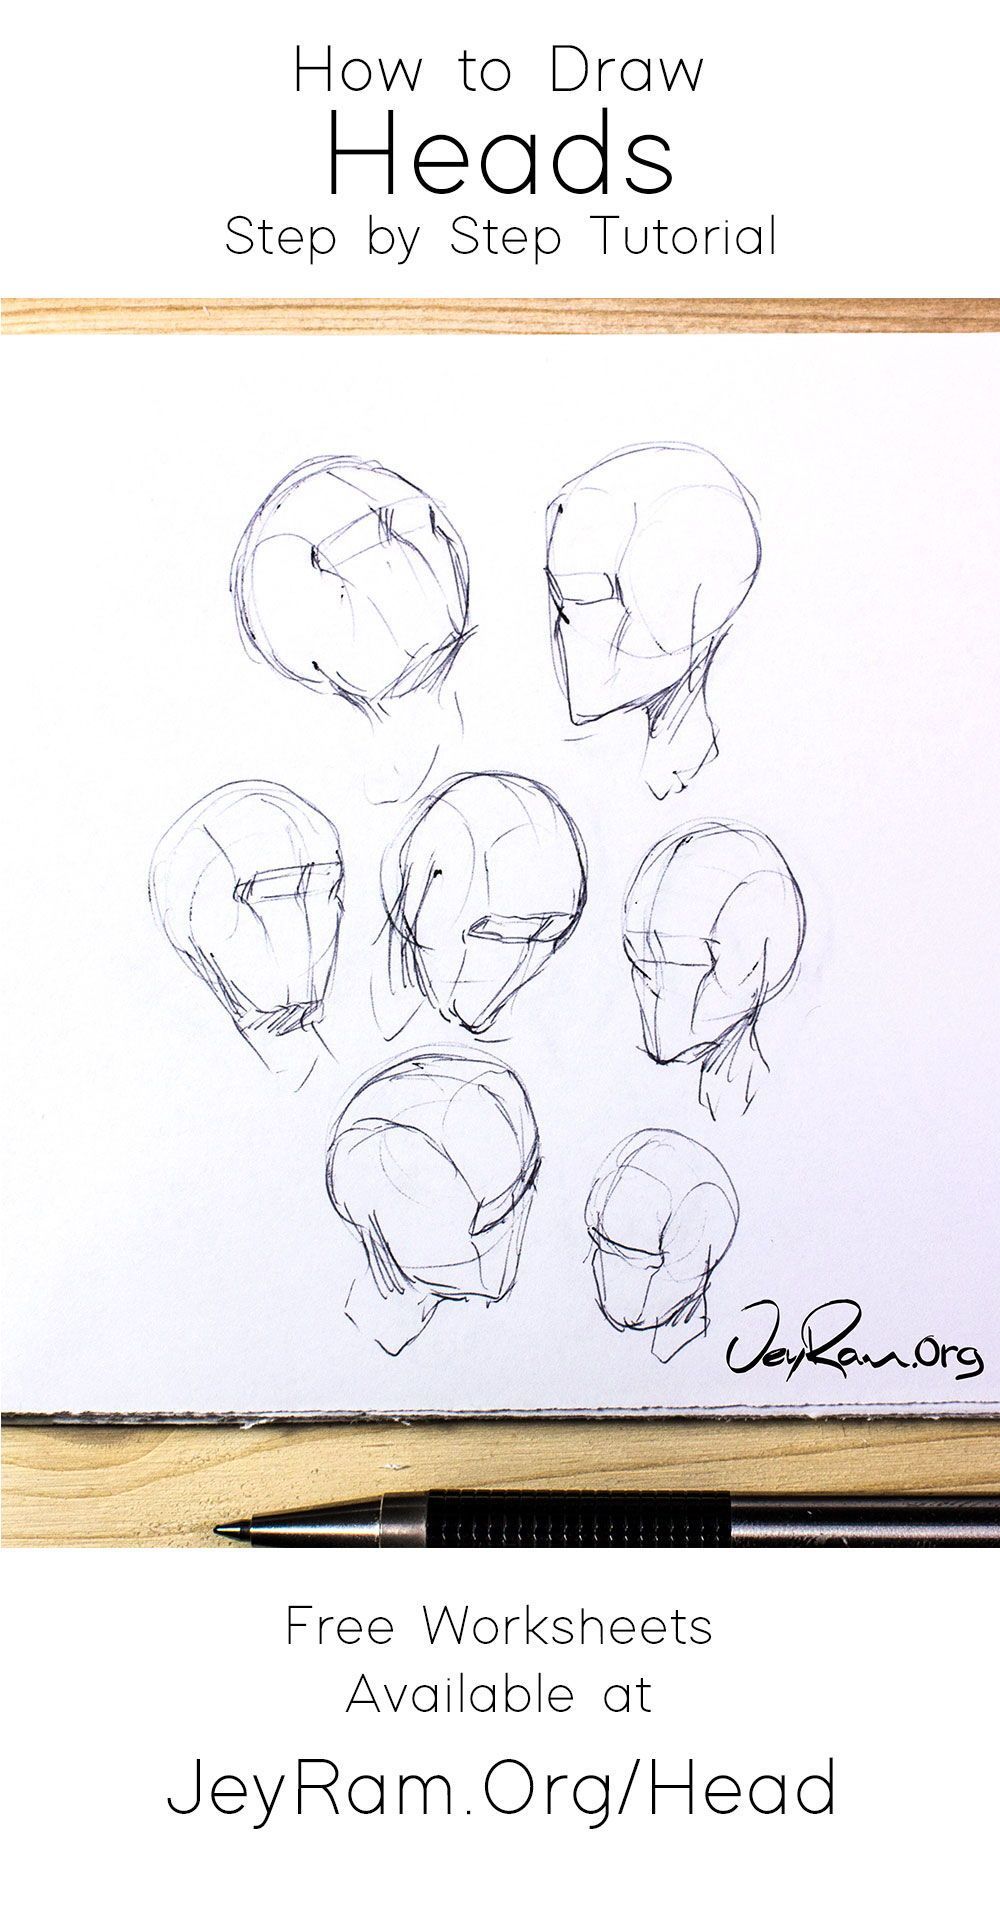 How To Draw The Head From Any Angle Step By Step Tutorial For Beginners Drawing The Human Head Drawings Drawing Tutorial